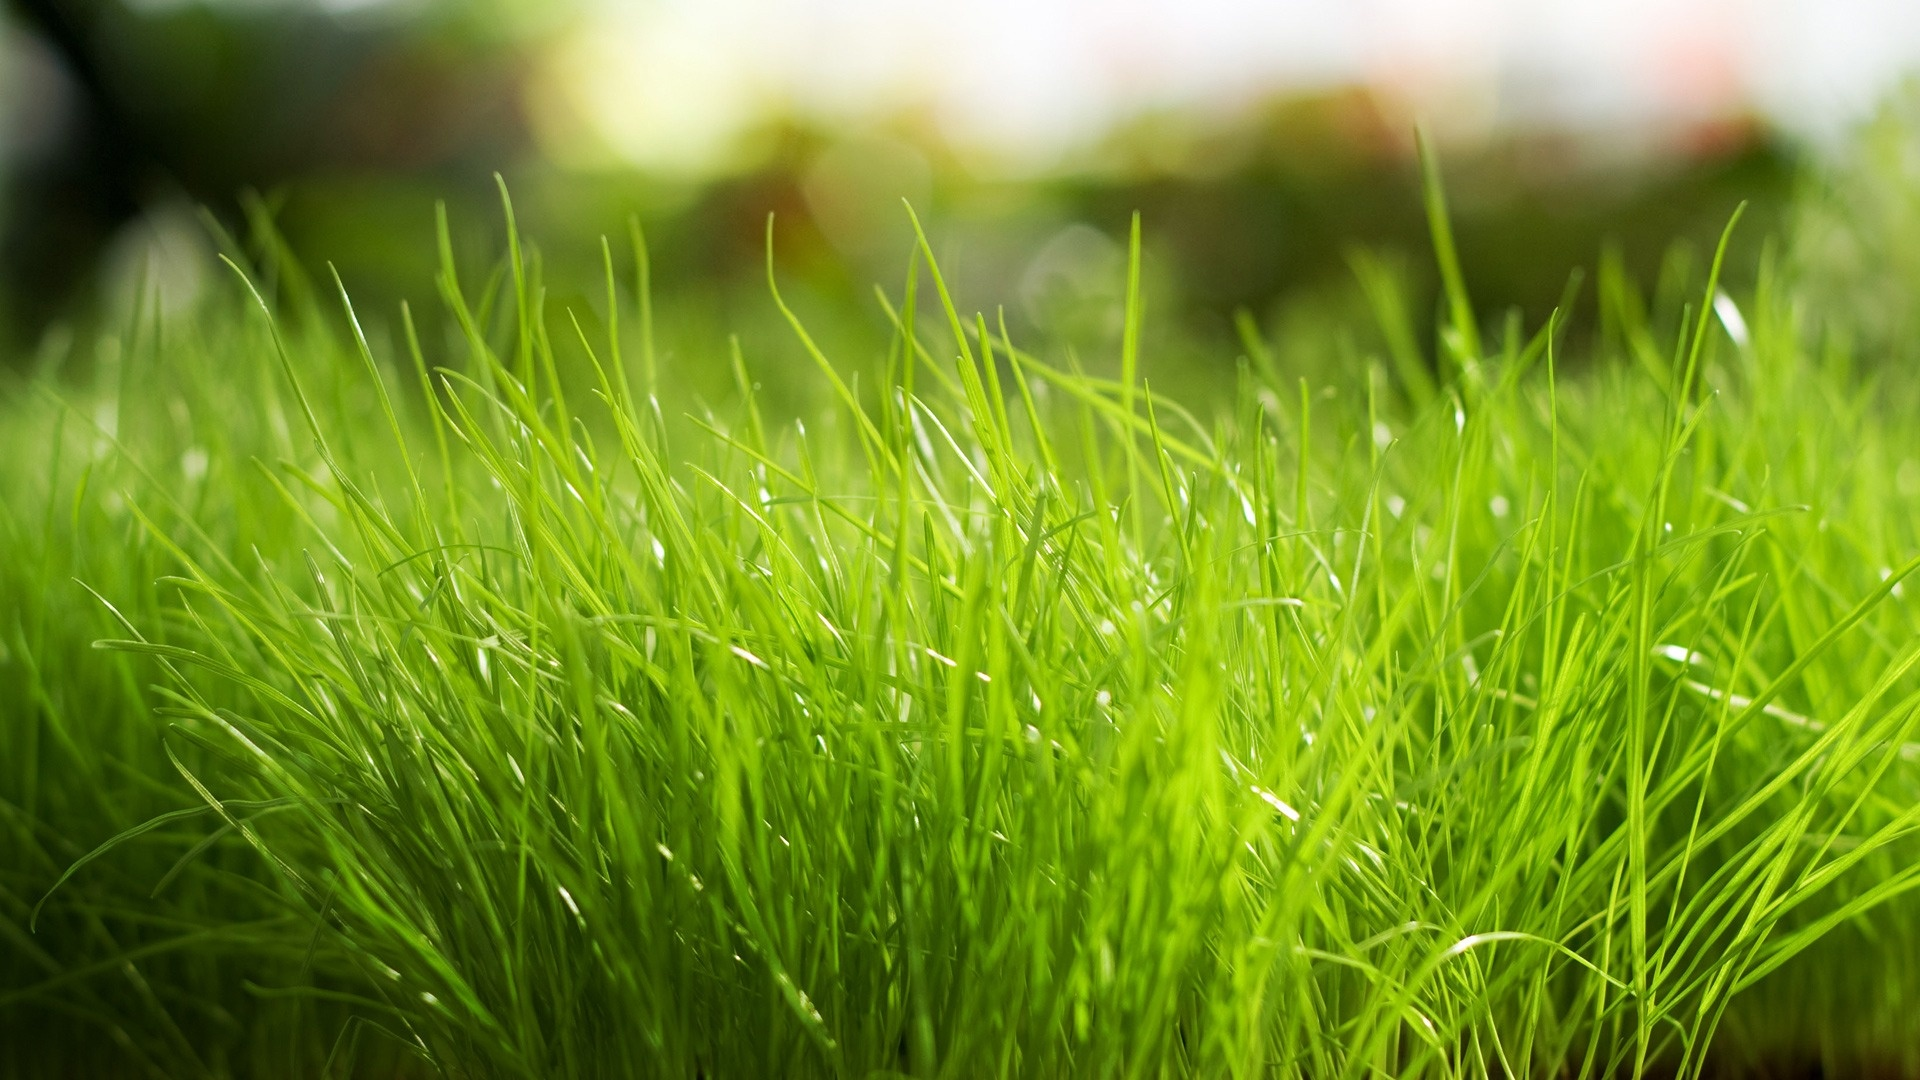 Grass Wallpaper · Grass Wallpaper ...